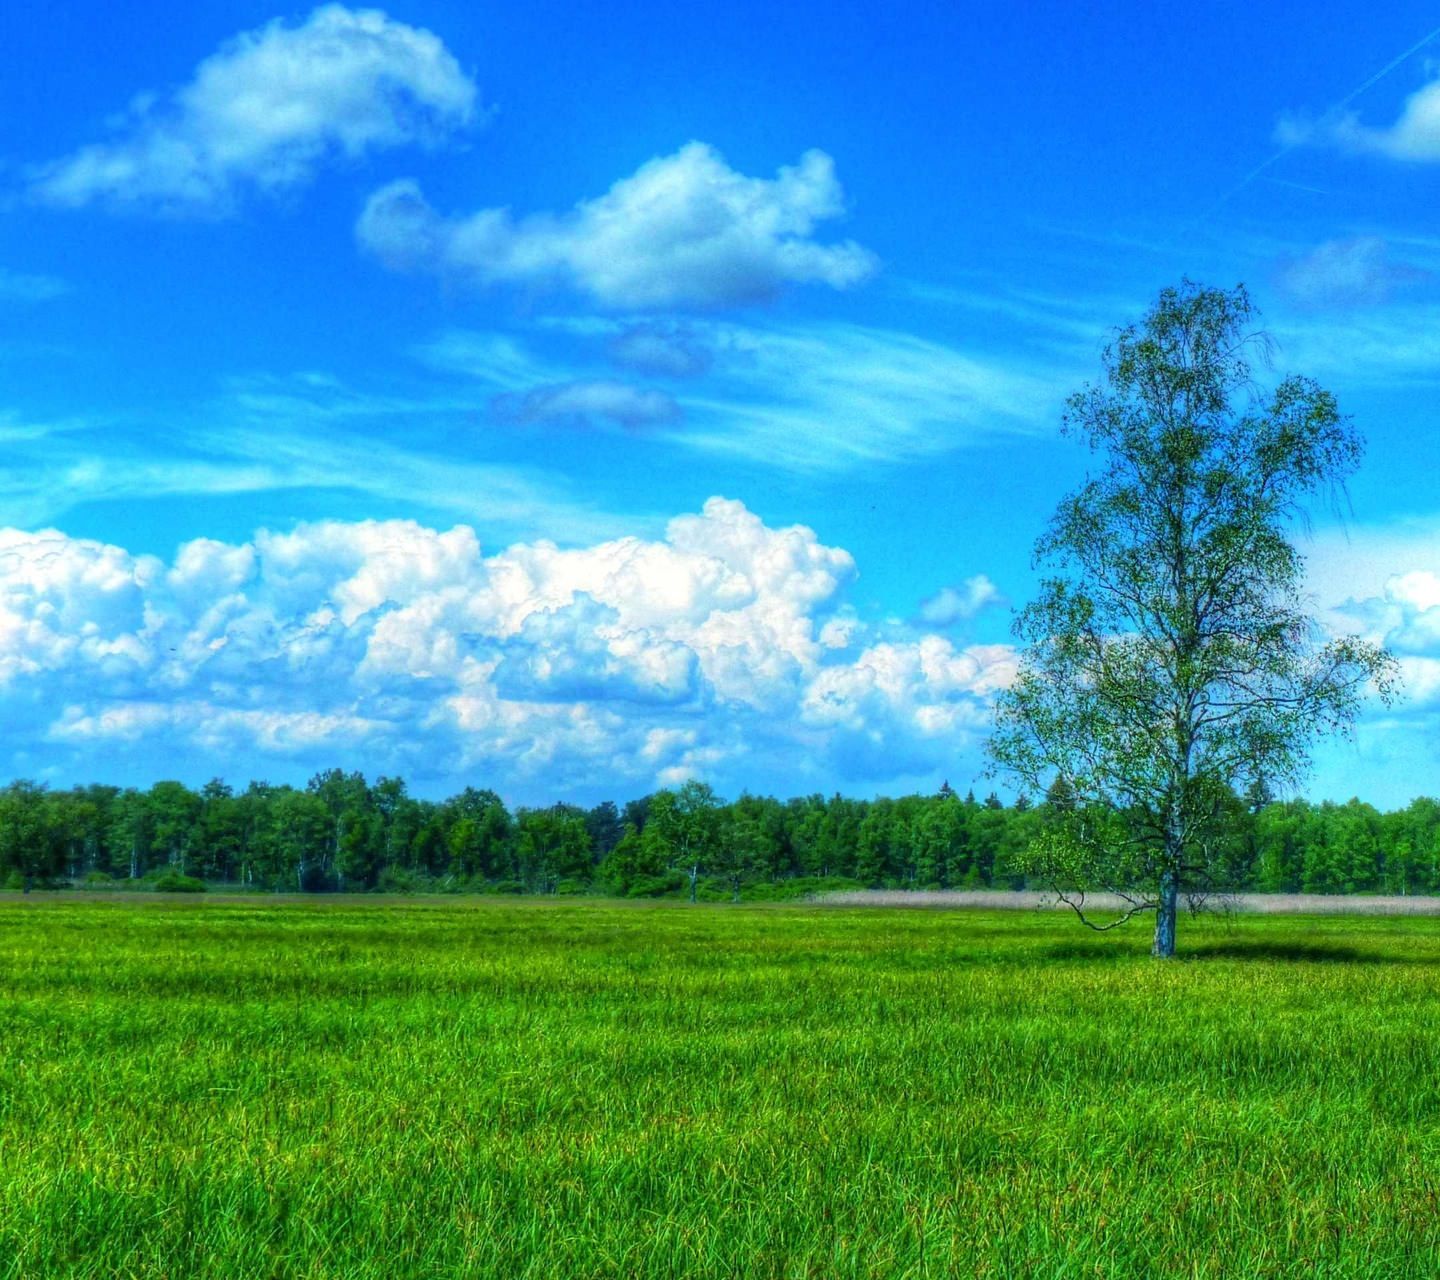 unduh 7200 background pemandangan rumput hd paling keren download background unduh 7200 background pemandangan